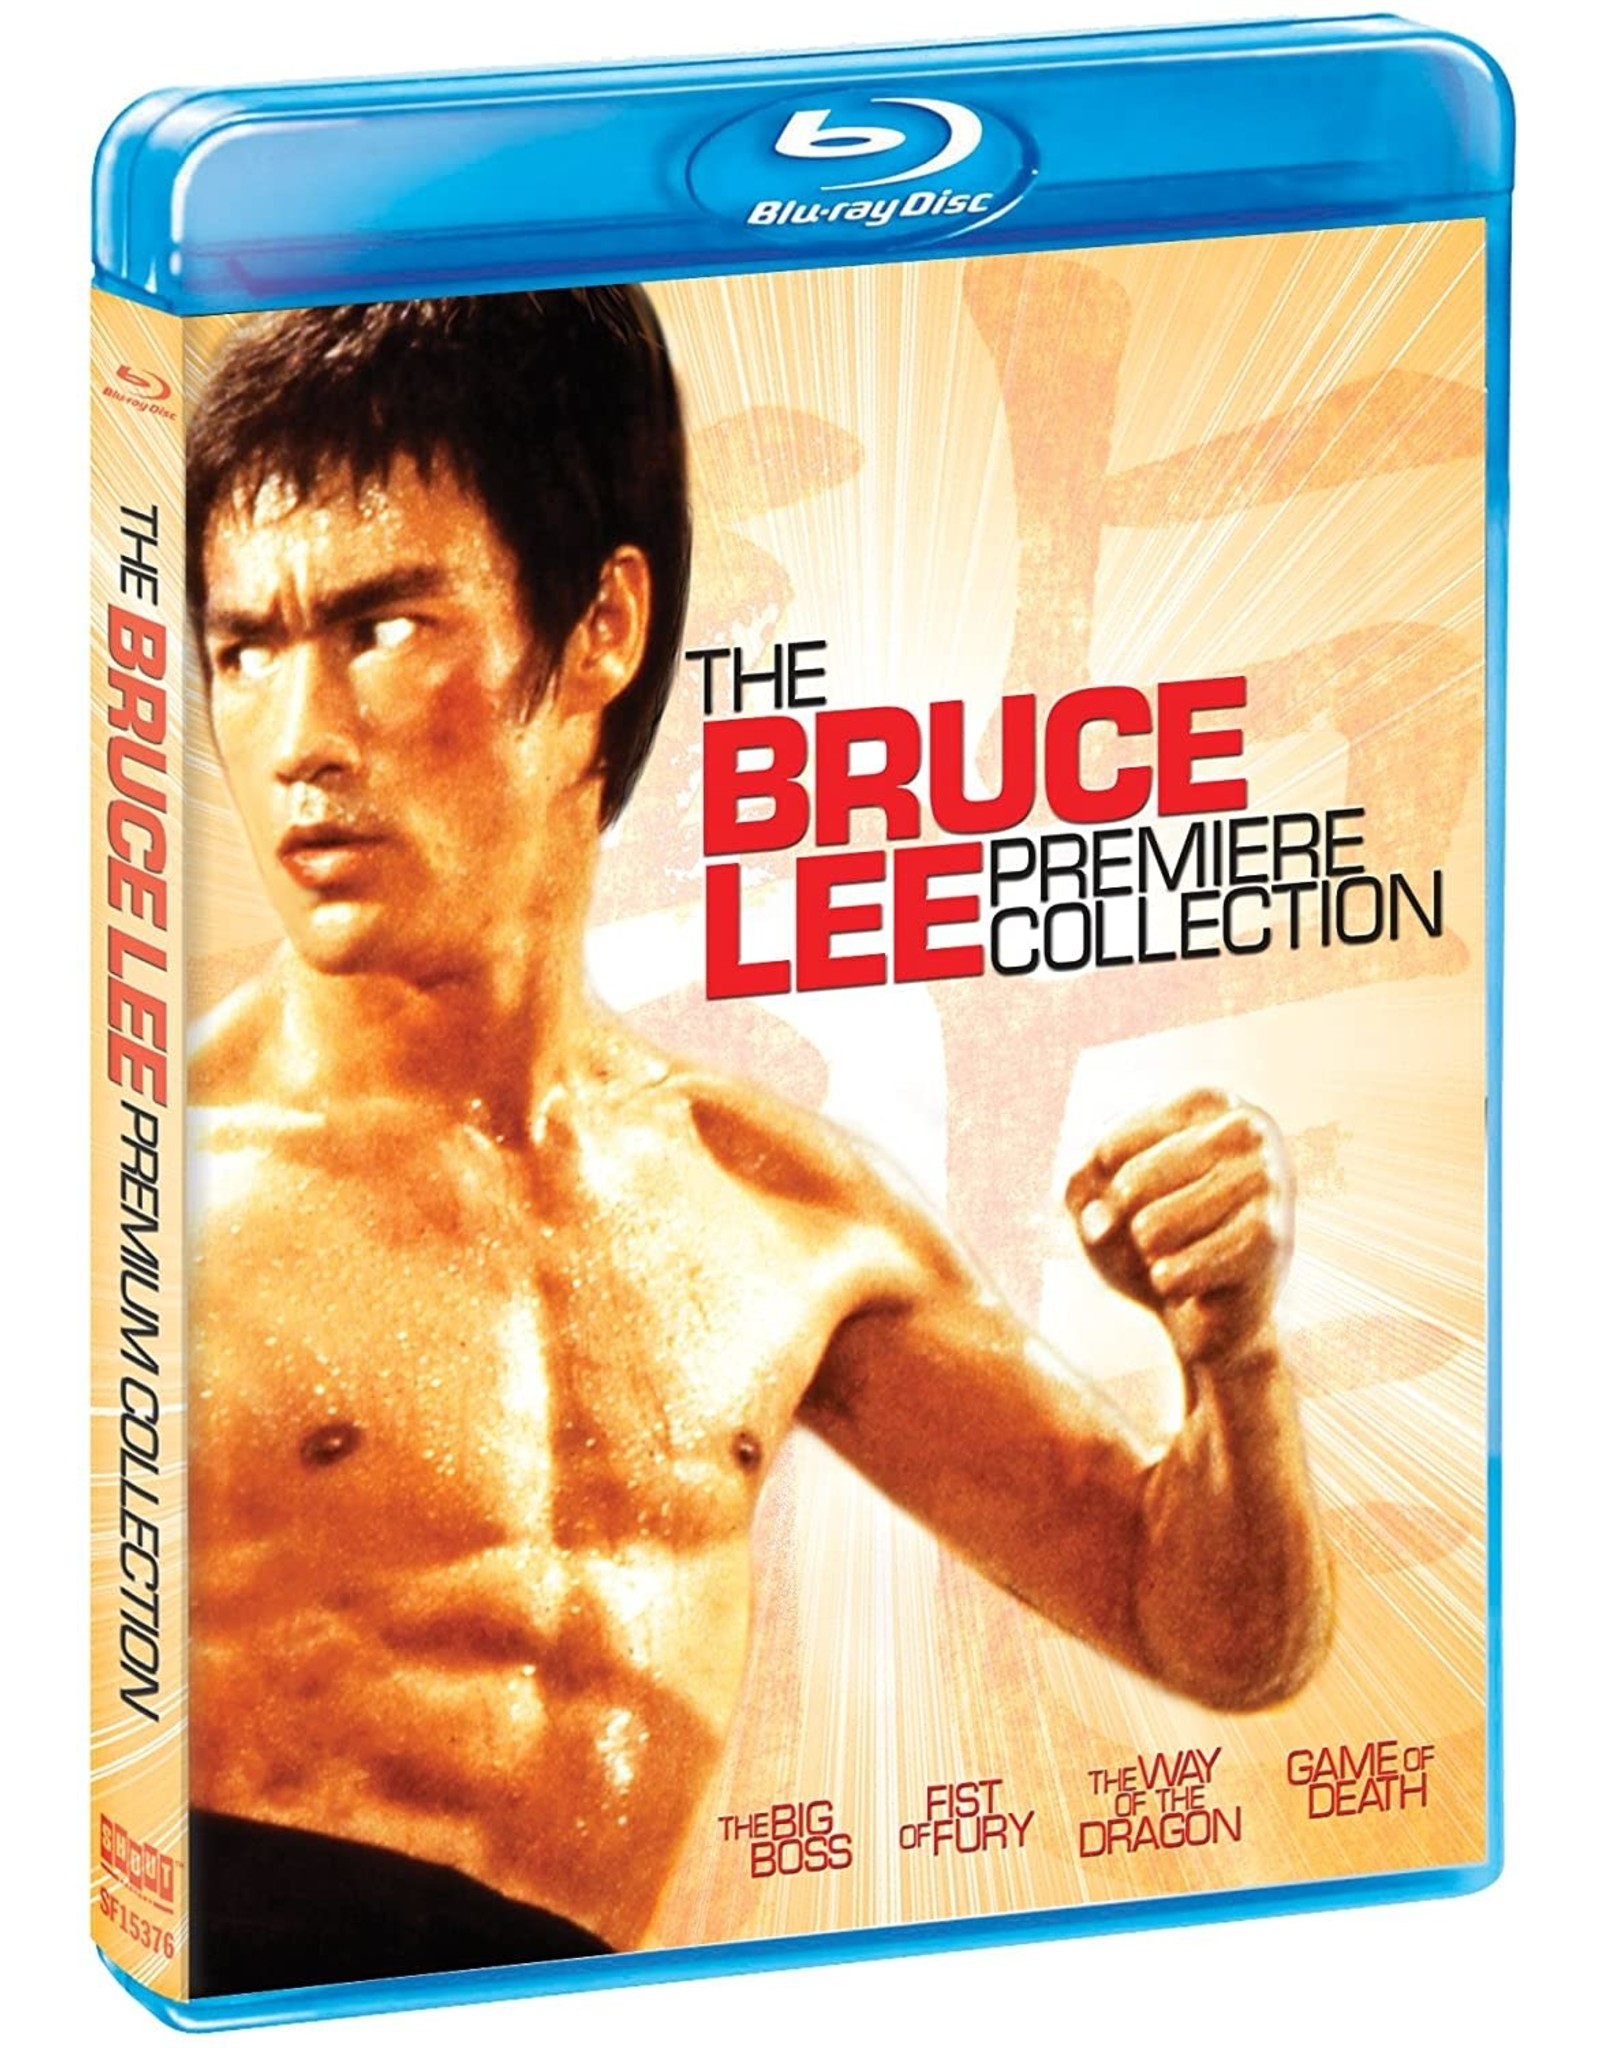 Cult and Cool Bruce Lee Premiere Collection